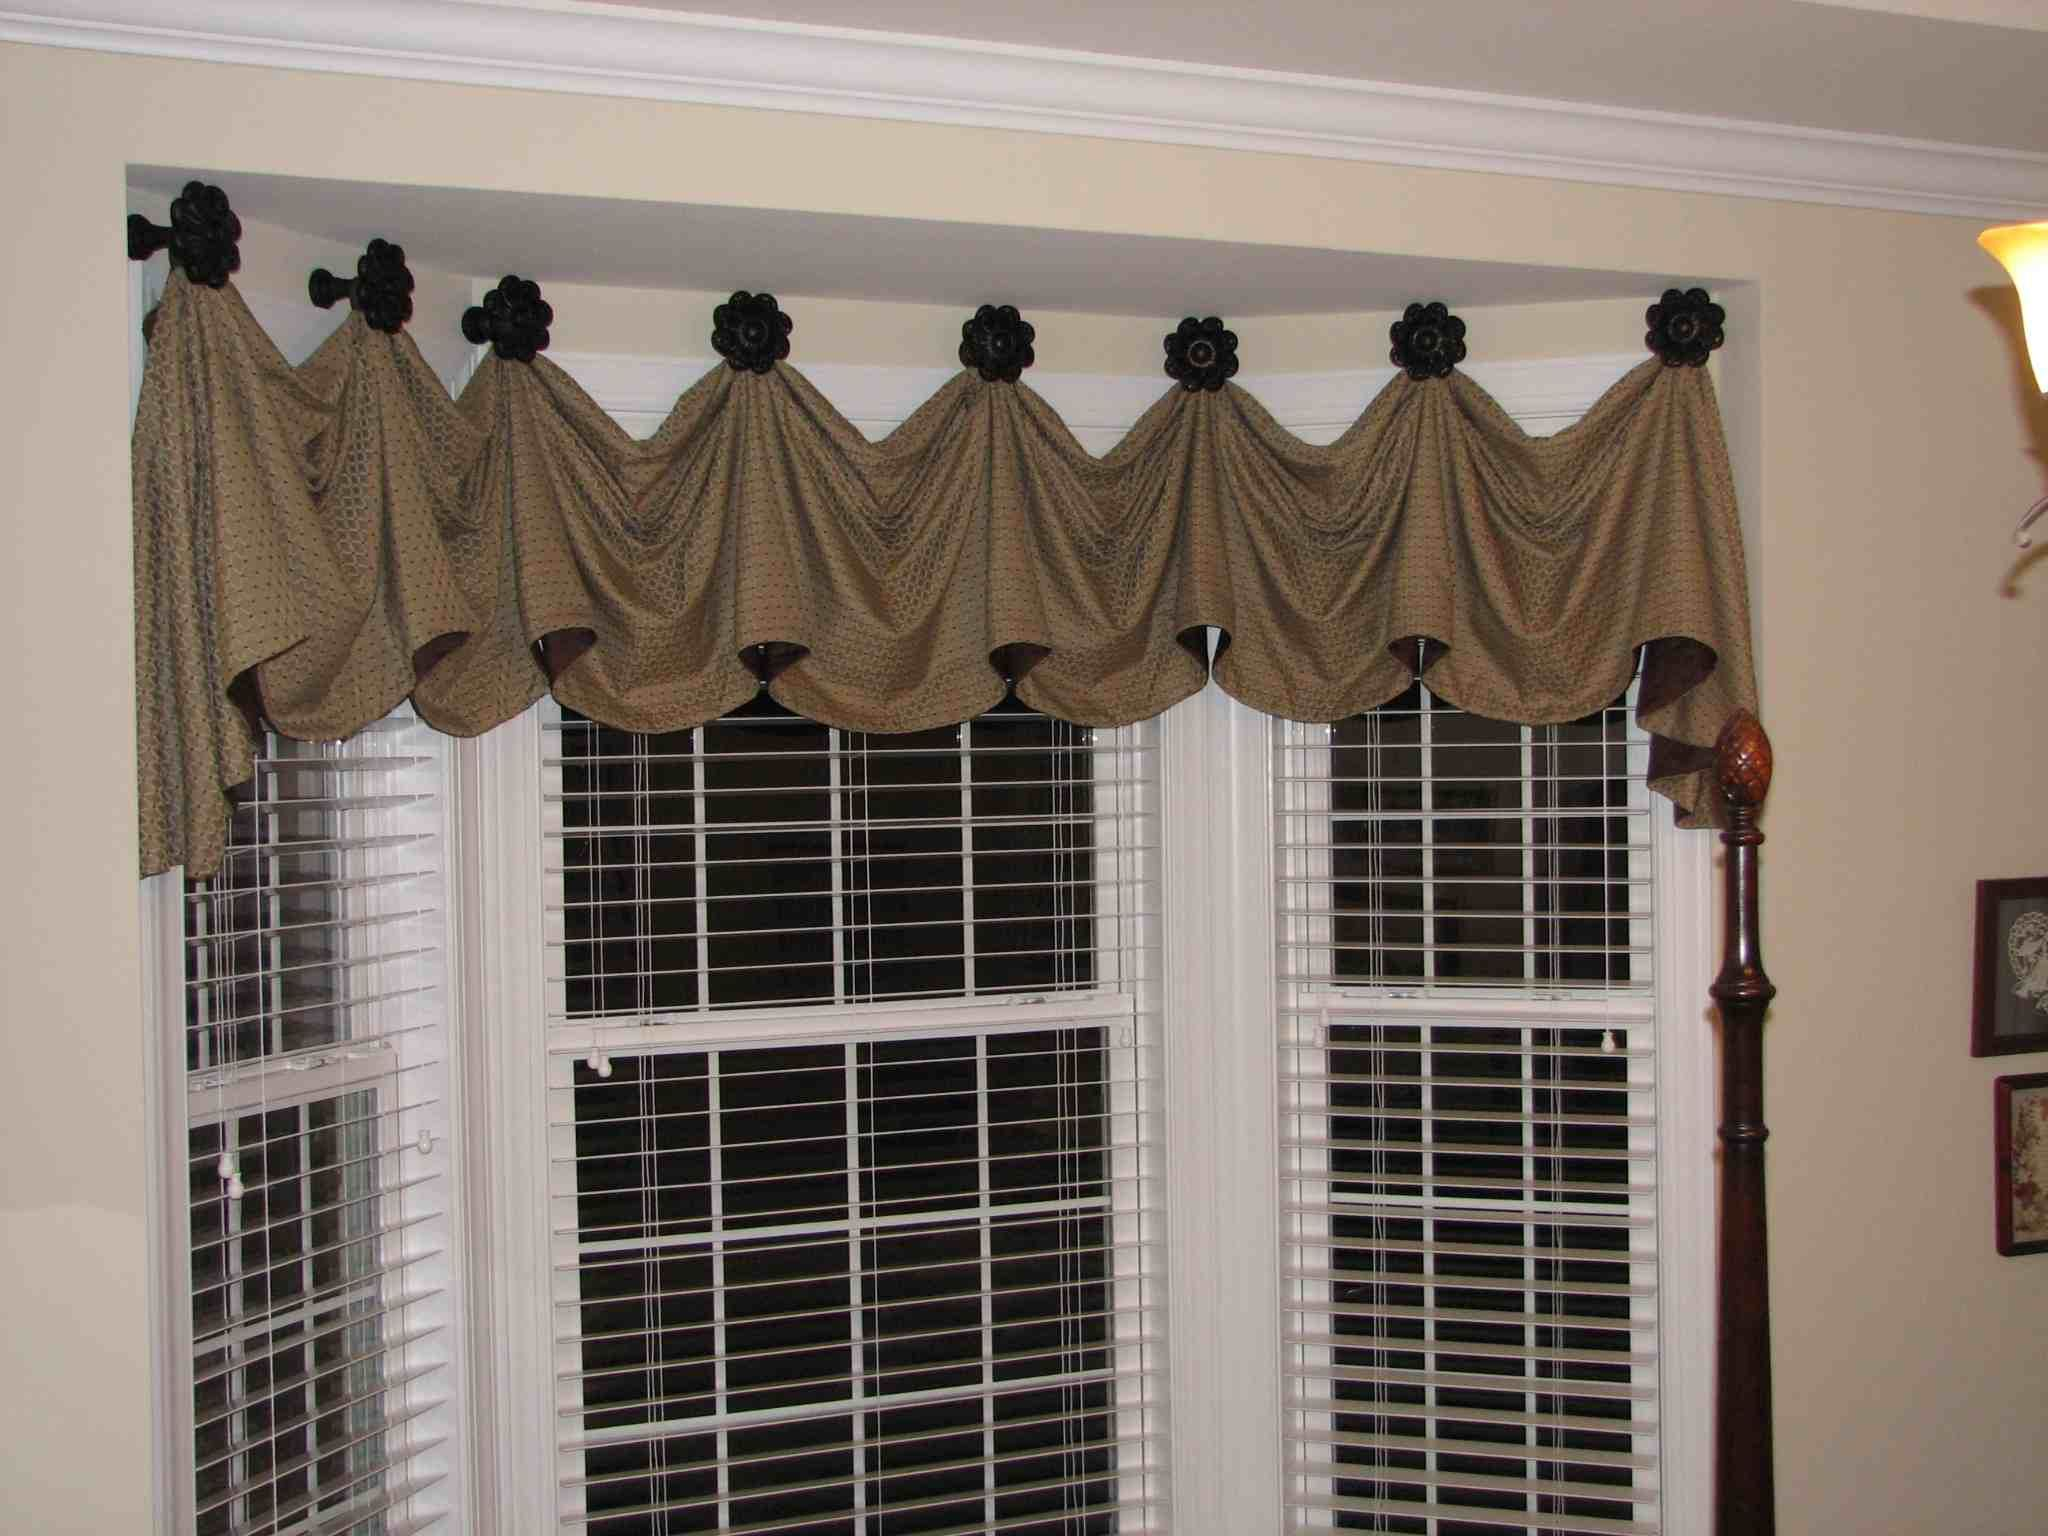 Furniture,Marvelous Kitchen Bay Window Treatments Design Ideas With Brown  Ruffle Curtain And White Iron Trellis Featuring Beige Colored  Wall,Attractive ...